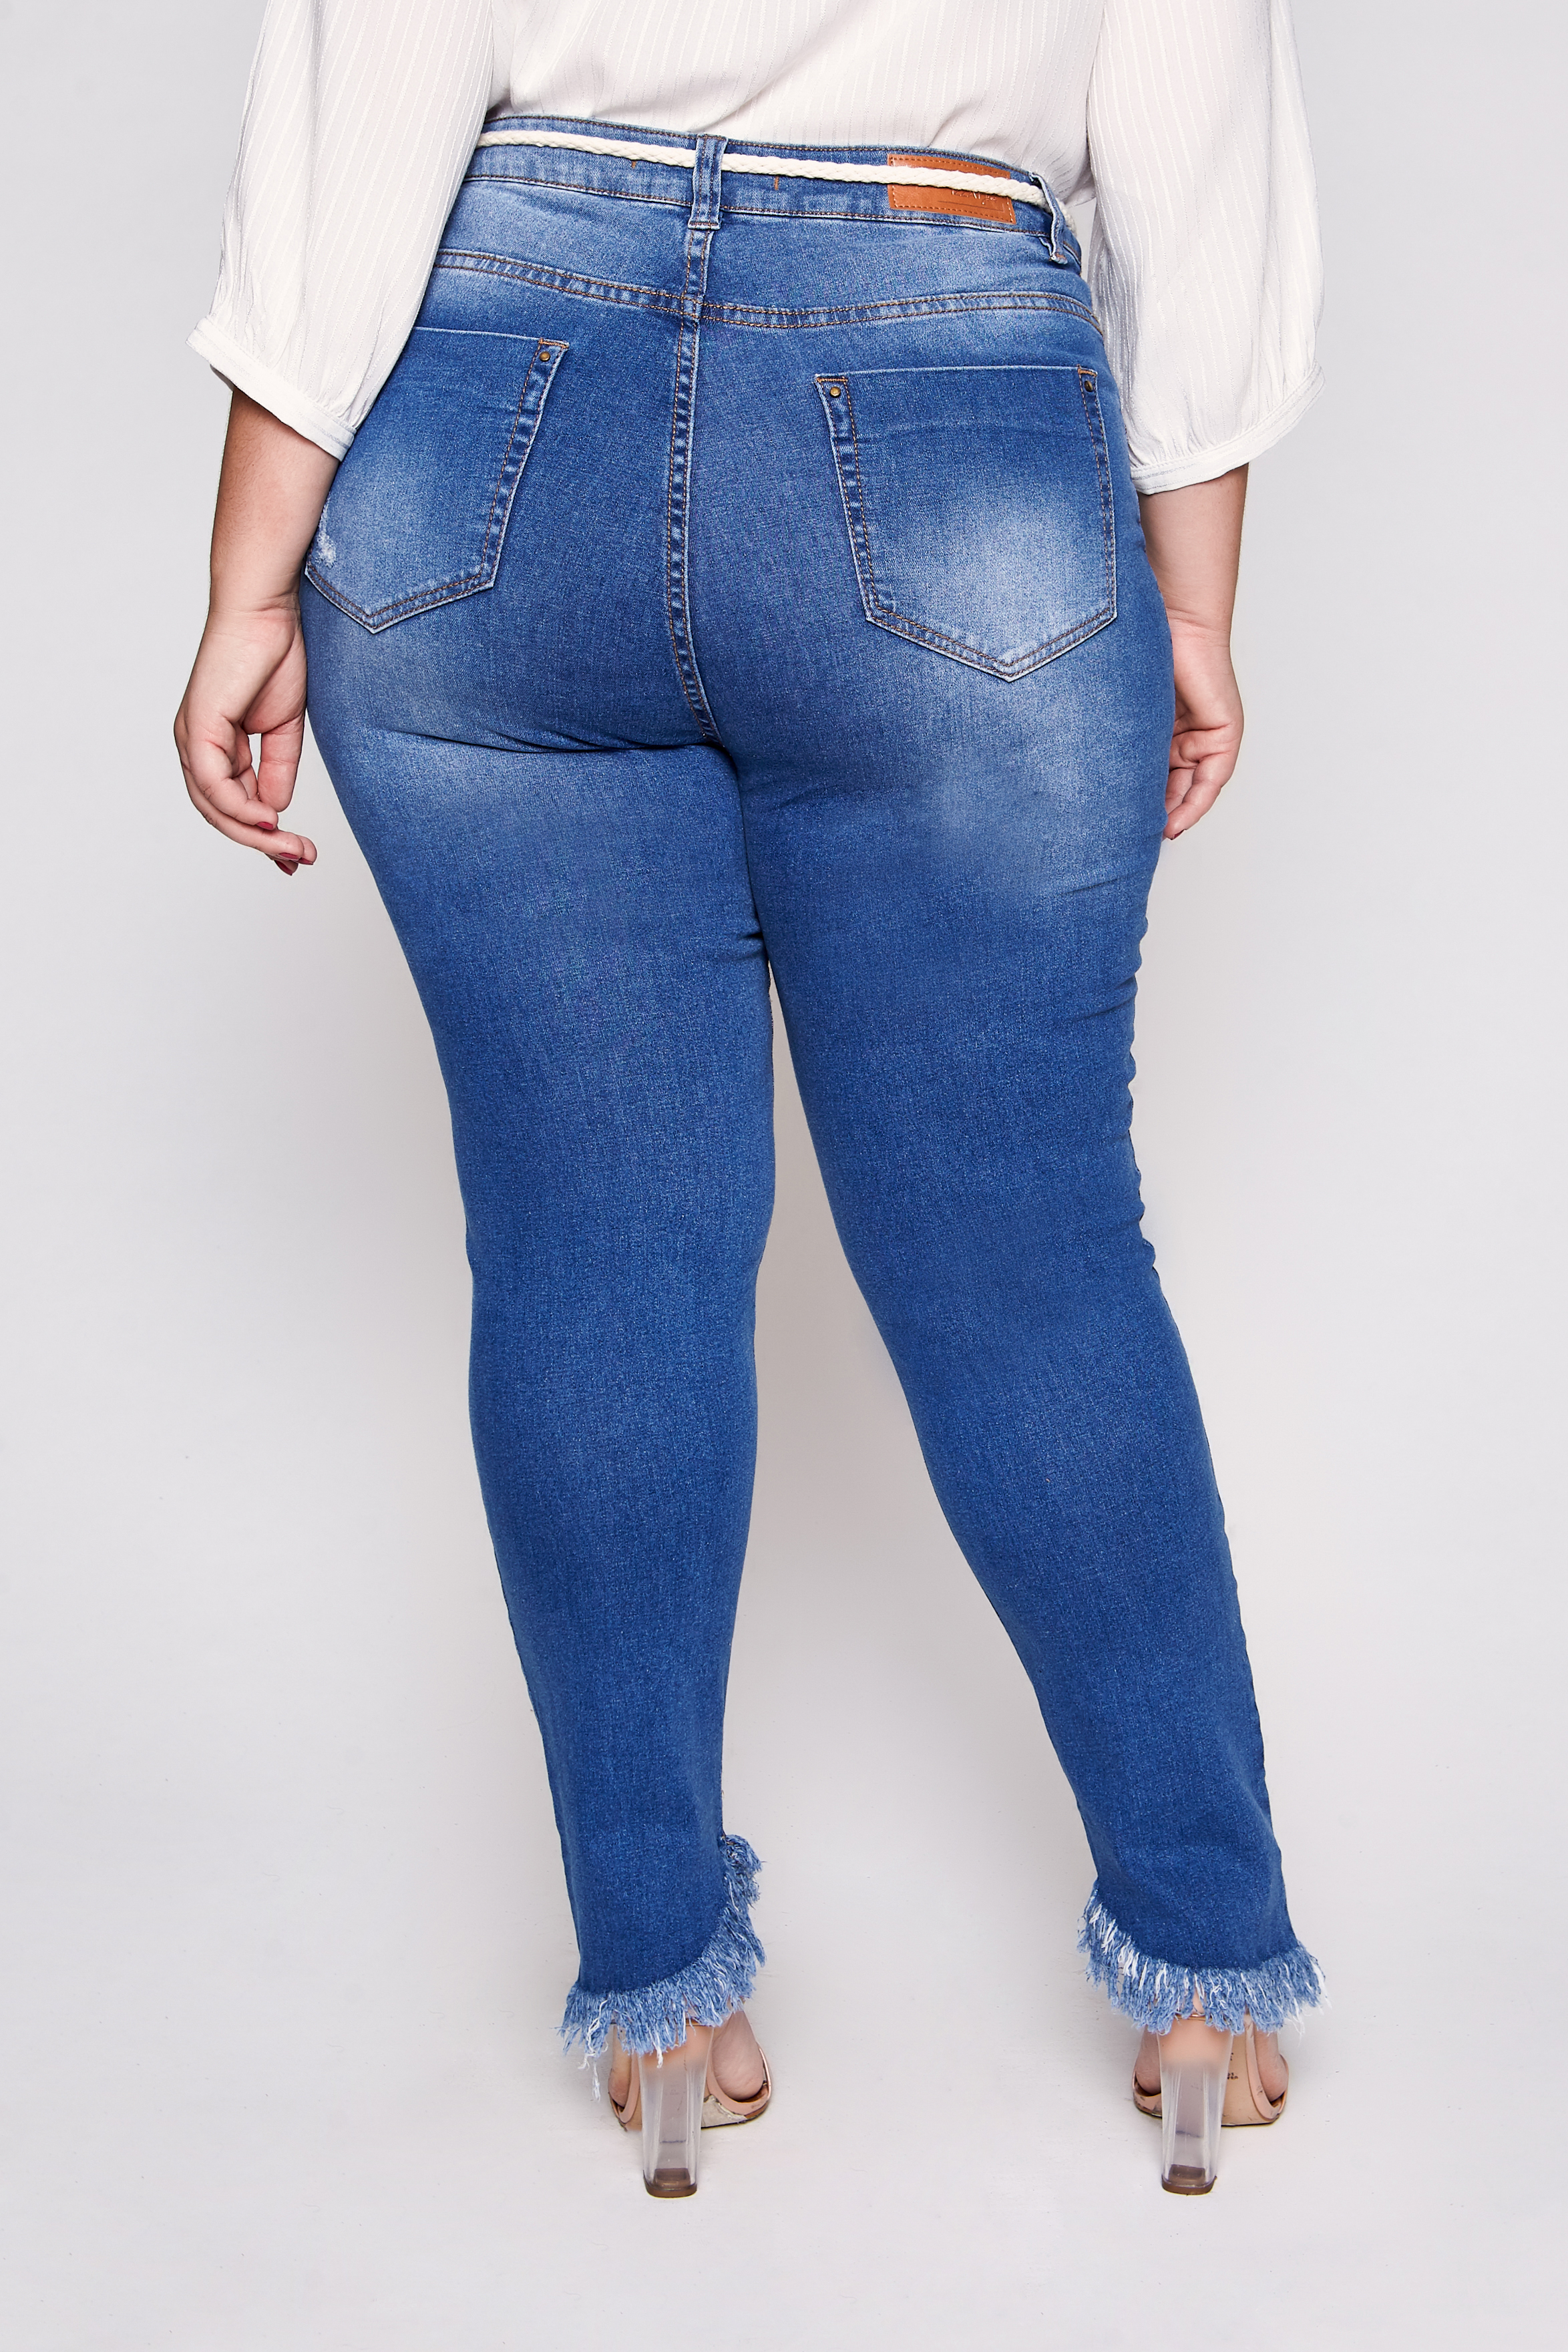 0310329_Calca_Jeans_Destroyed_Kaia_3